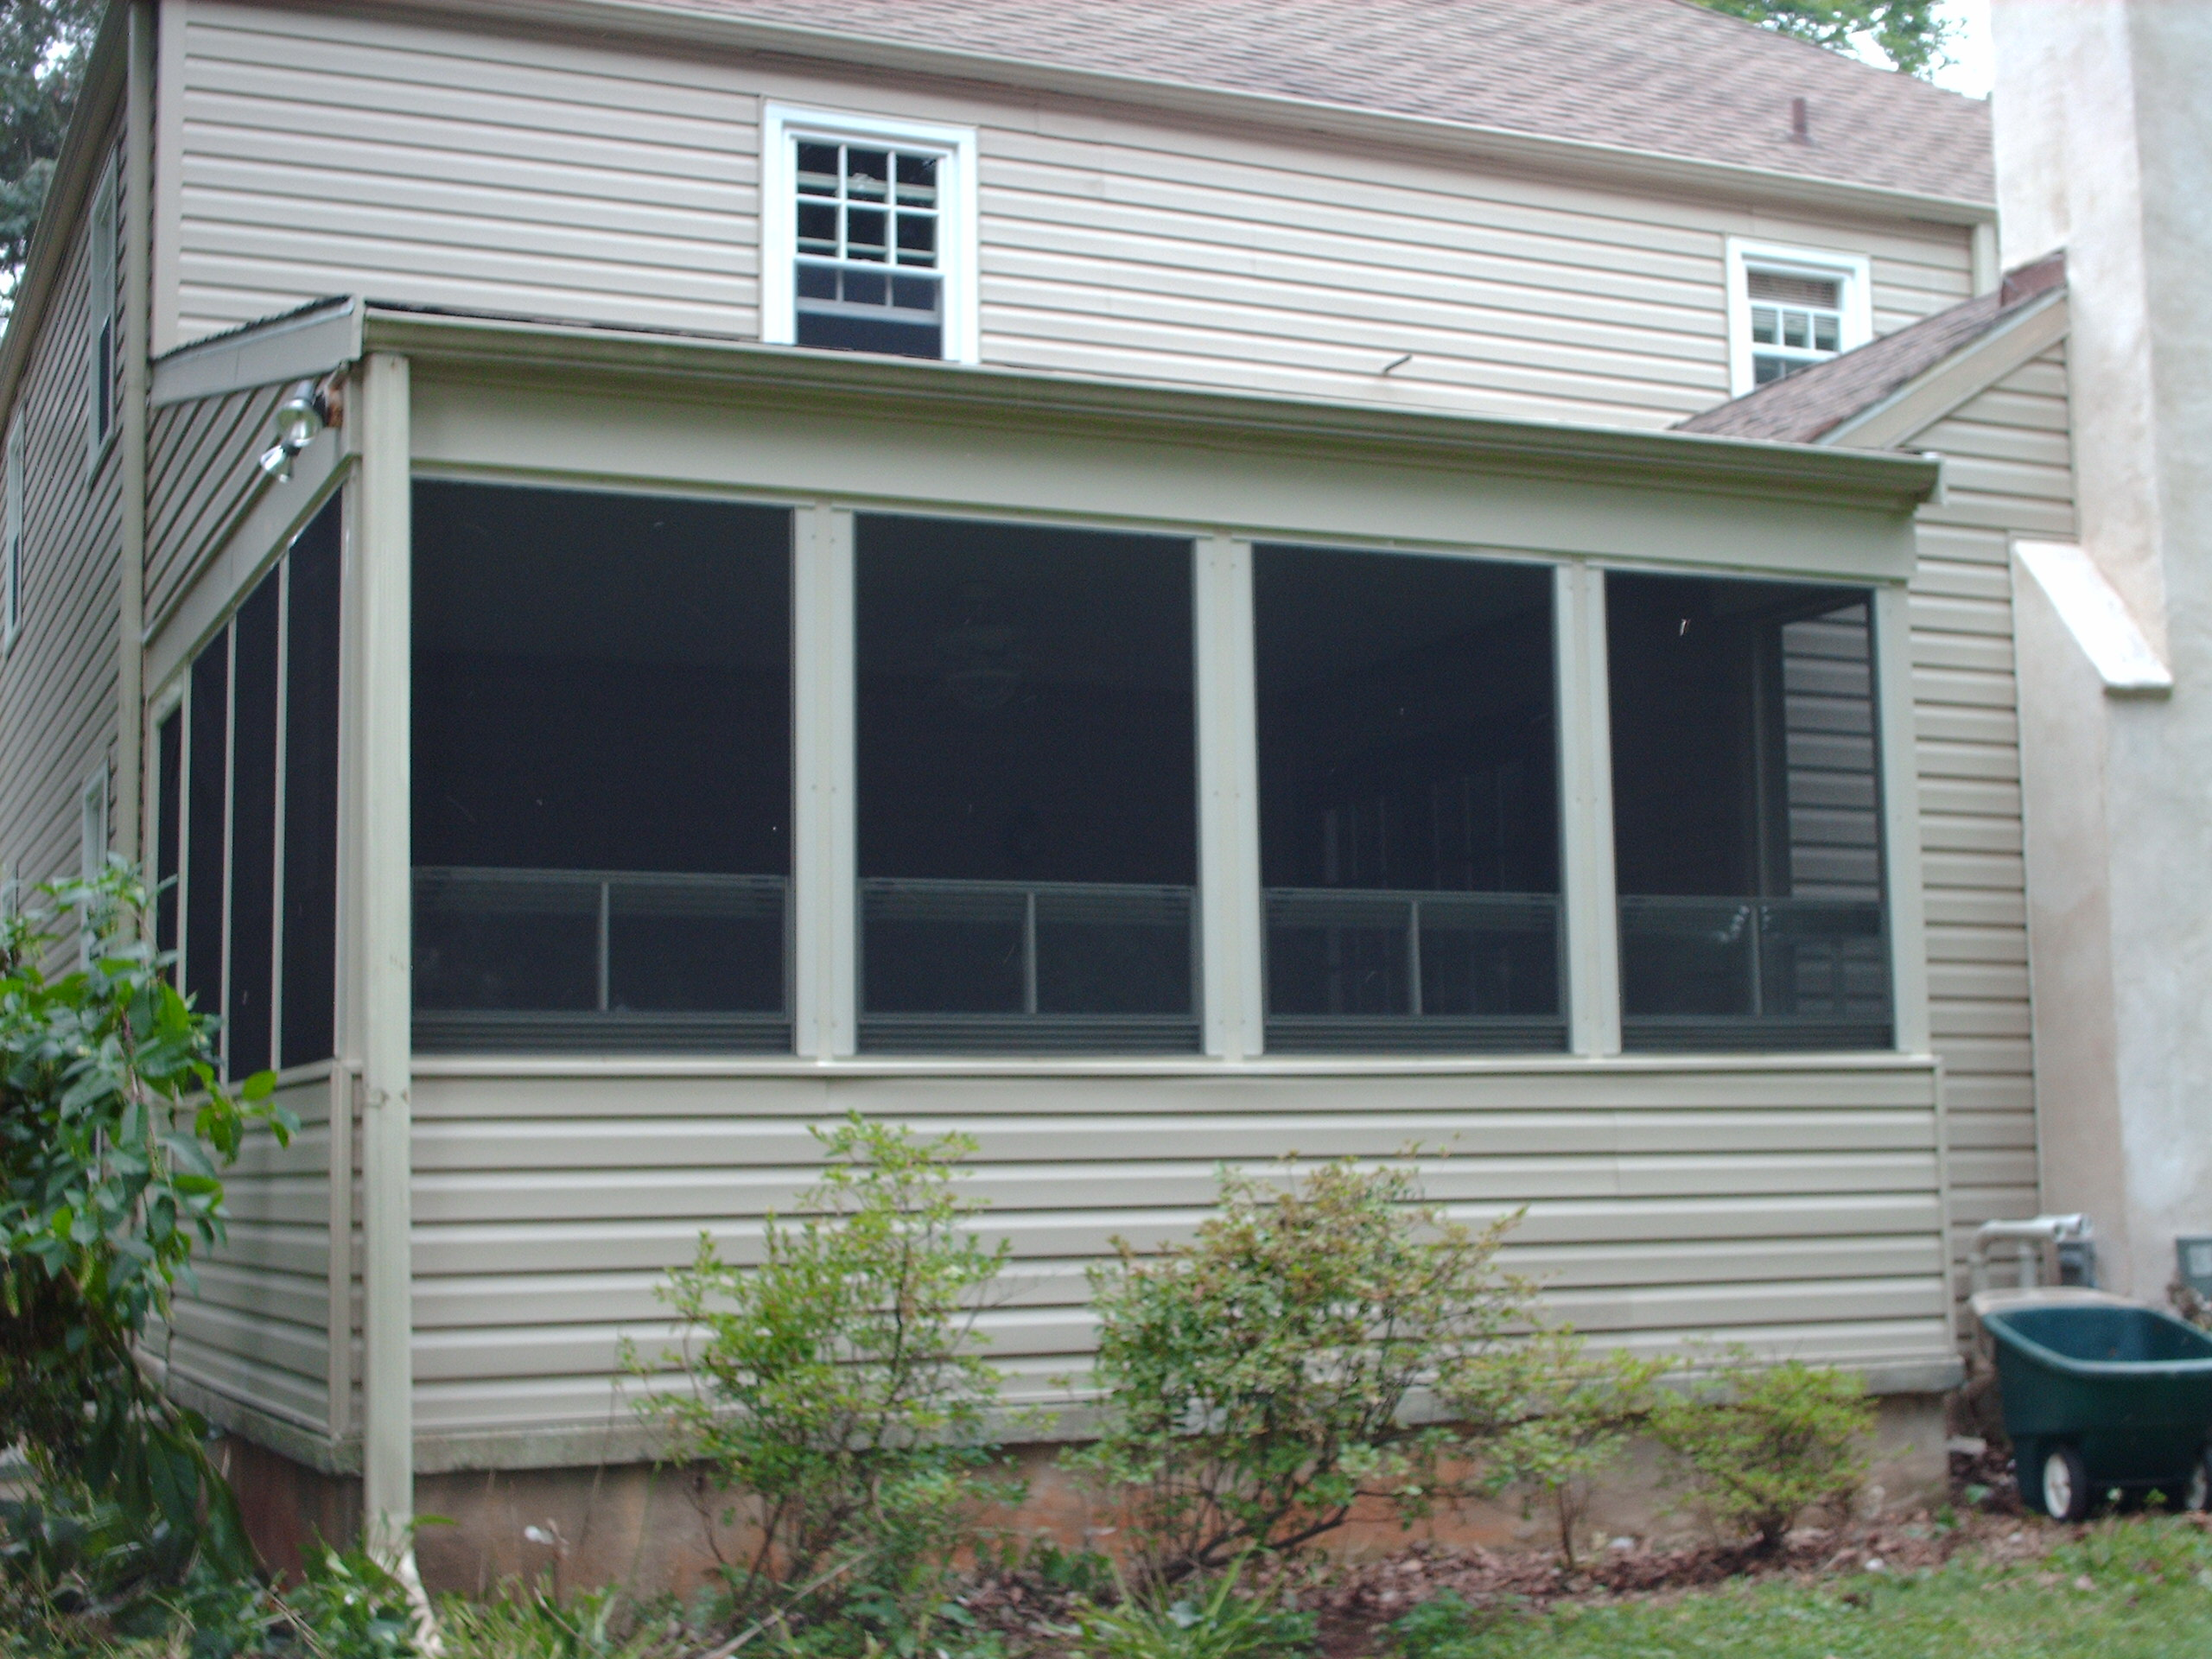 Completed exterior of side wall